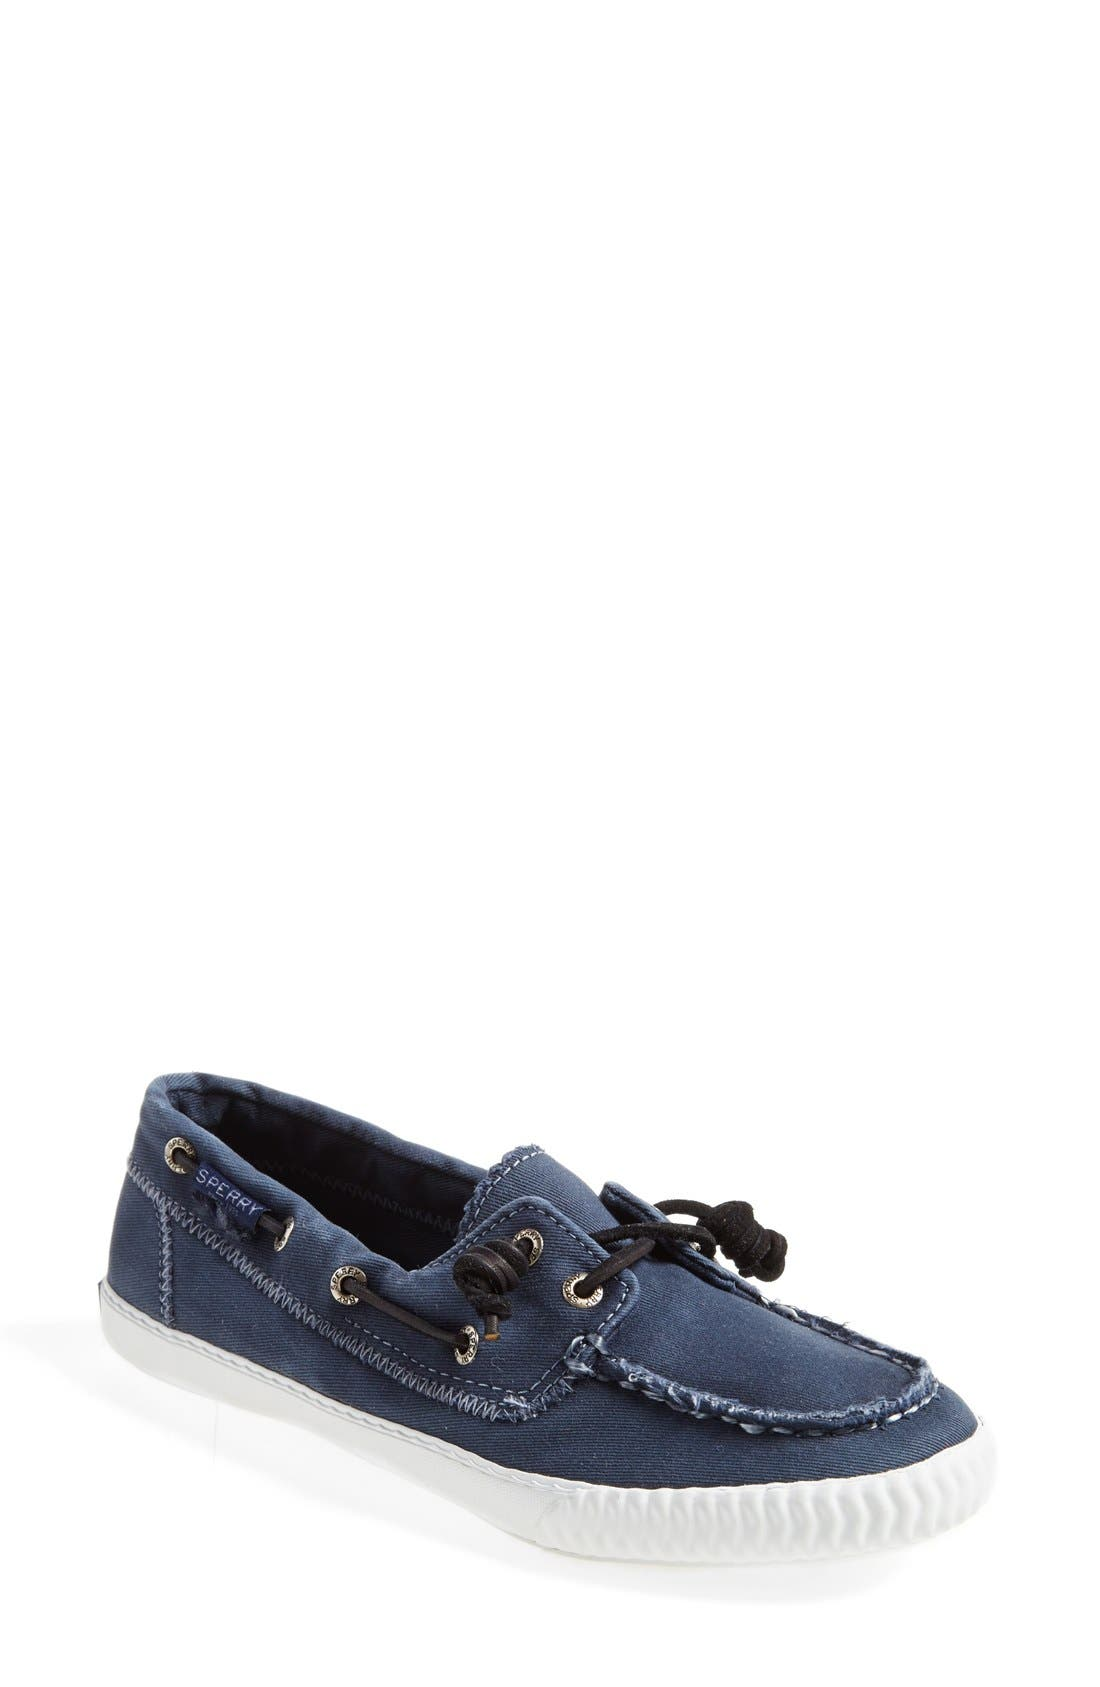 abf2cba8a2d Sperry Shoes for Women